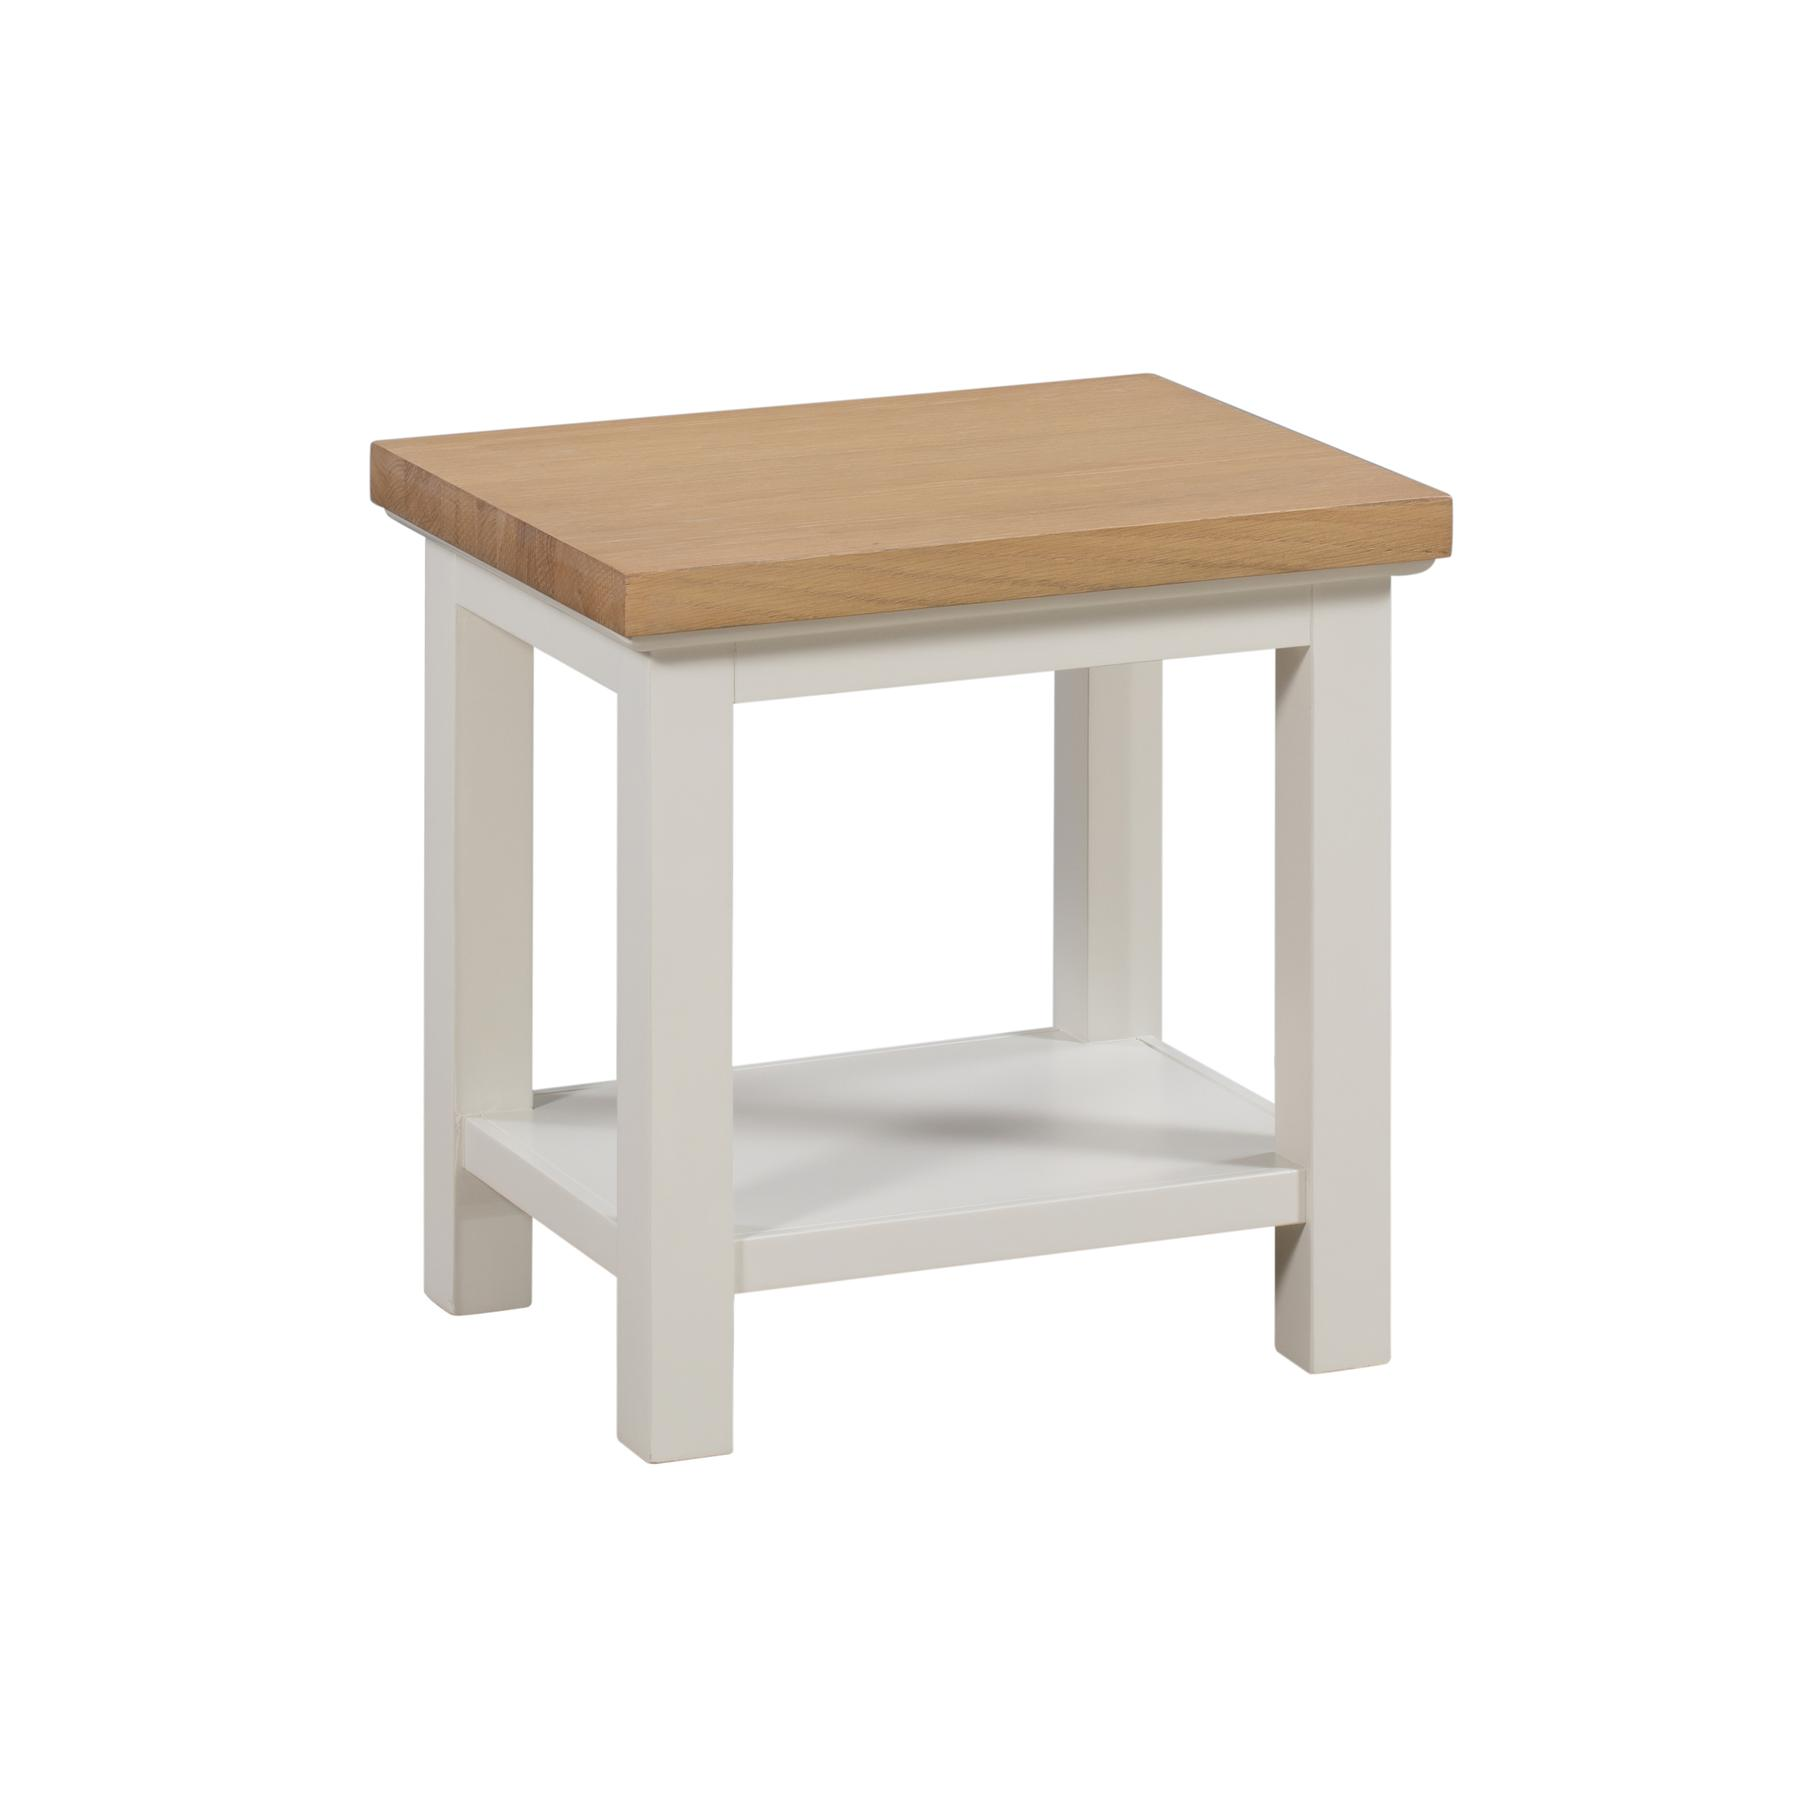 Ripley Oak Collection Lamp Table With Shelf